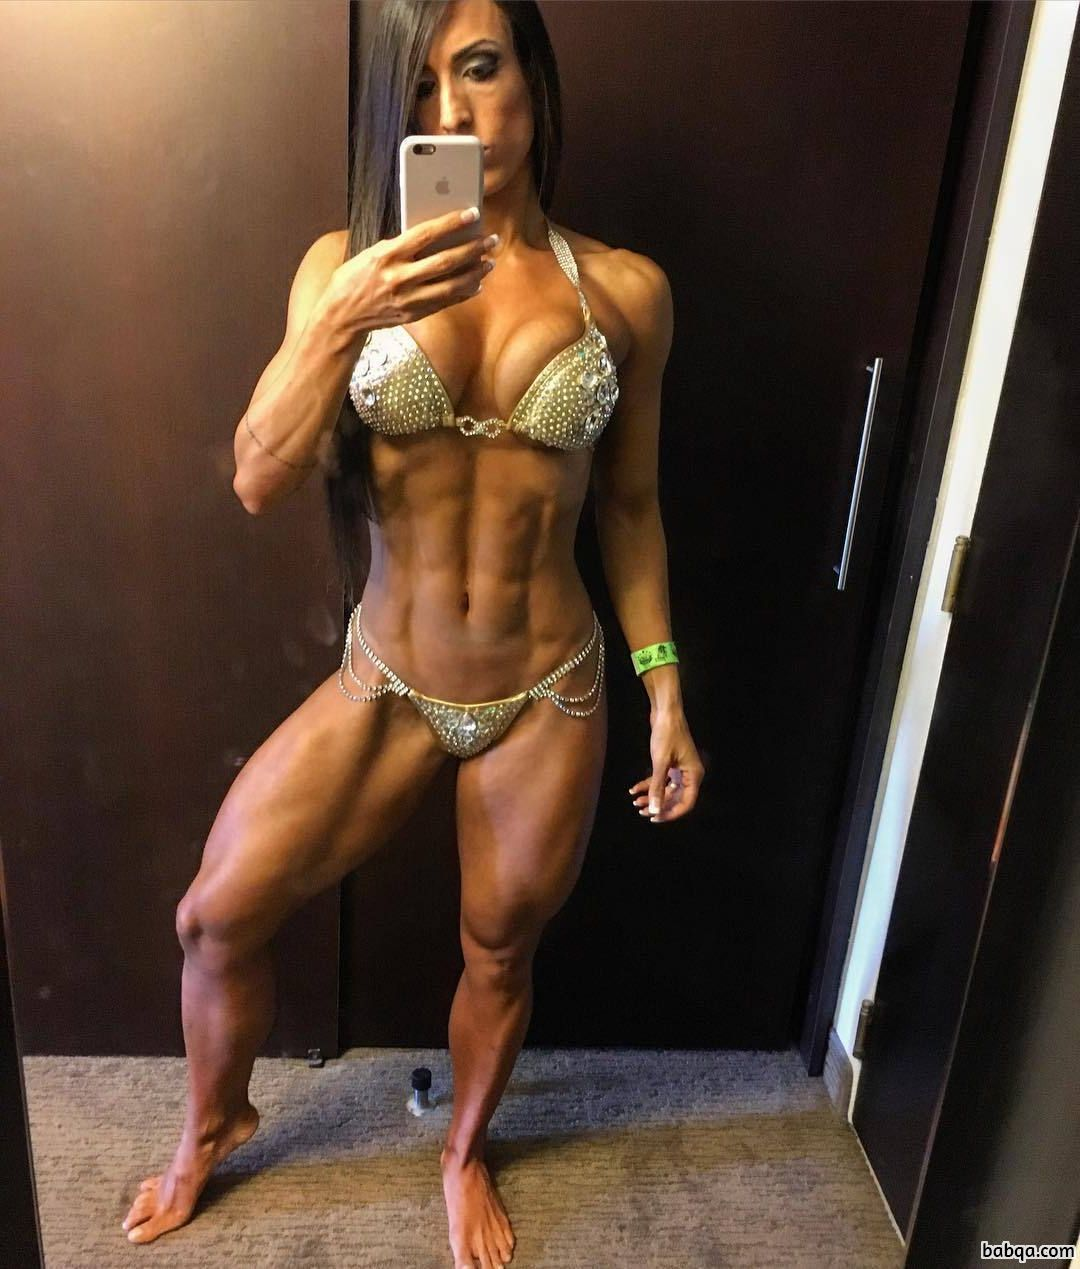 perfect babe with strong body and muscle arms repost from linkedin